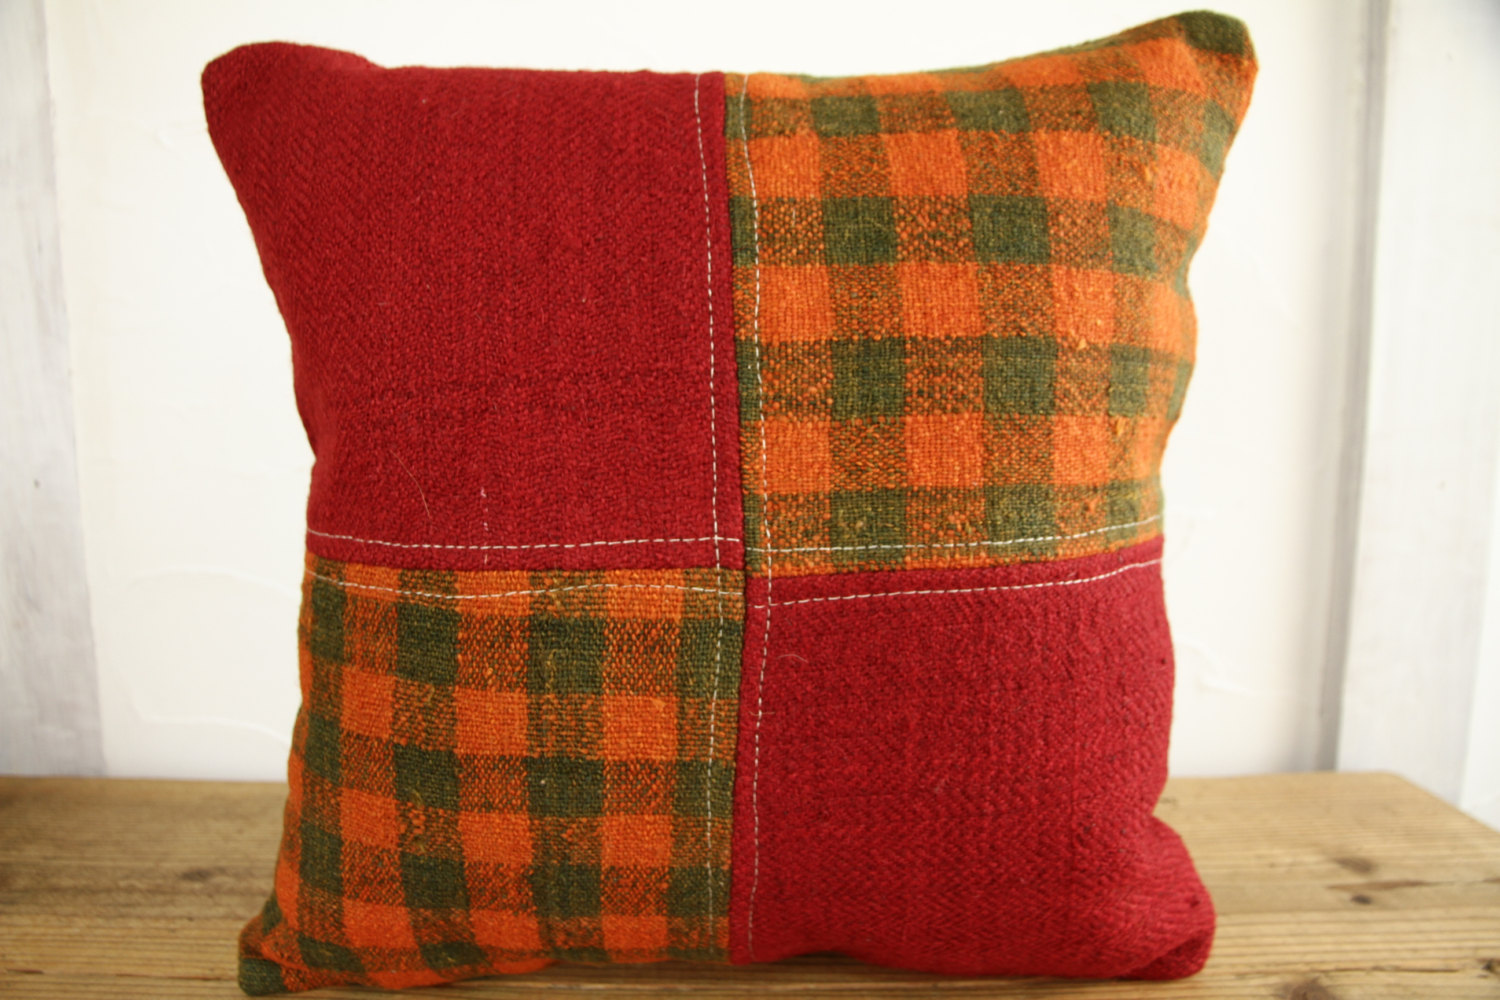 Kilim Pillows |18x18| Decorative Pillows | 299 | Accent Pillows, Kilim cushions